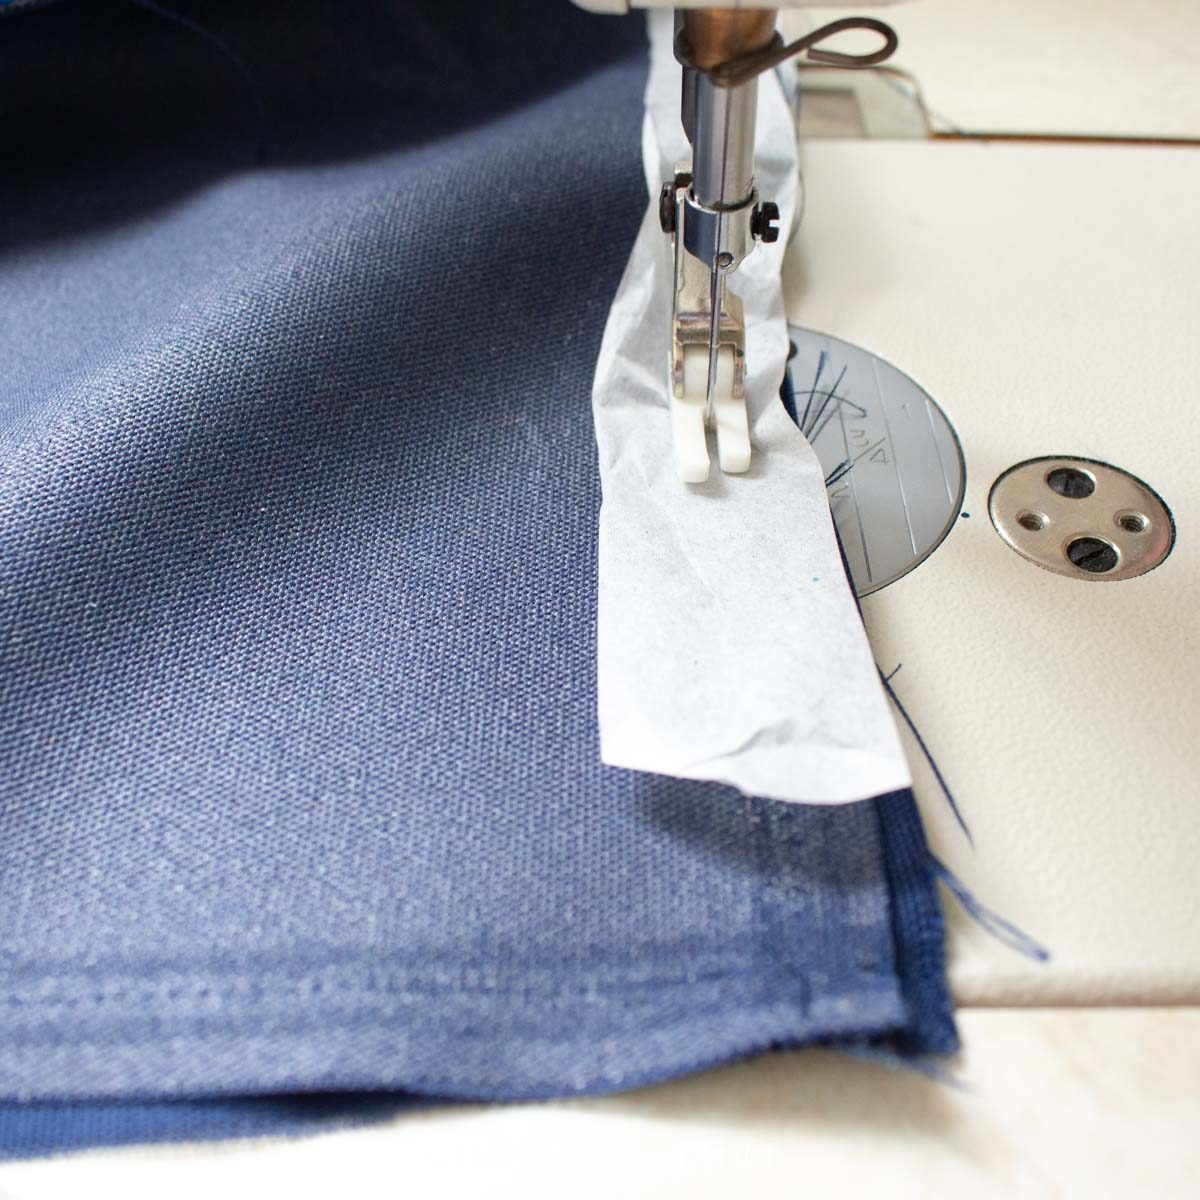 Sewing along the edge of the fabric.